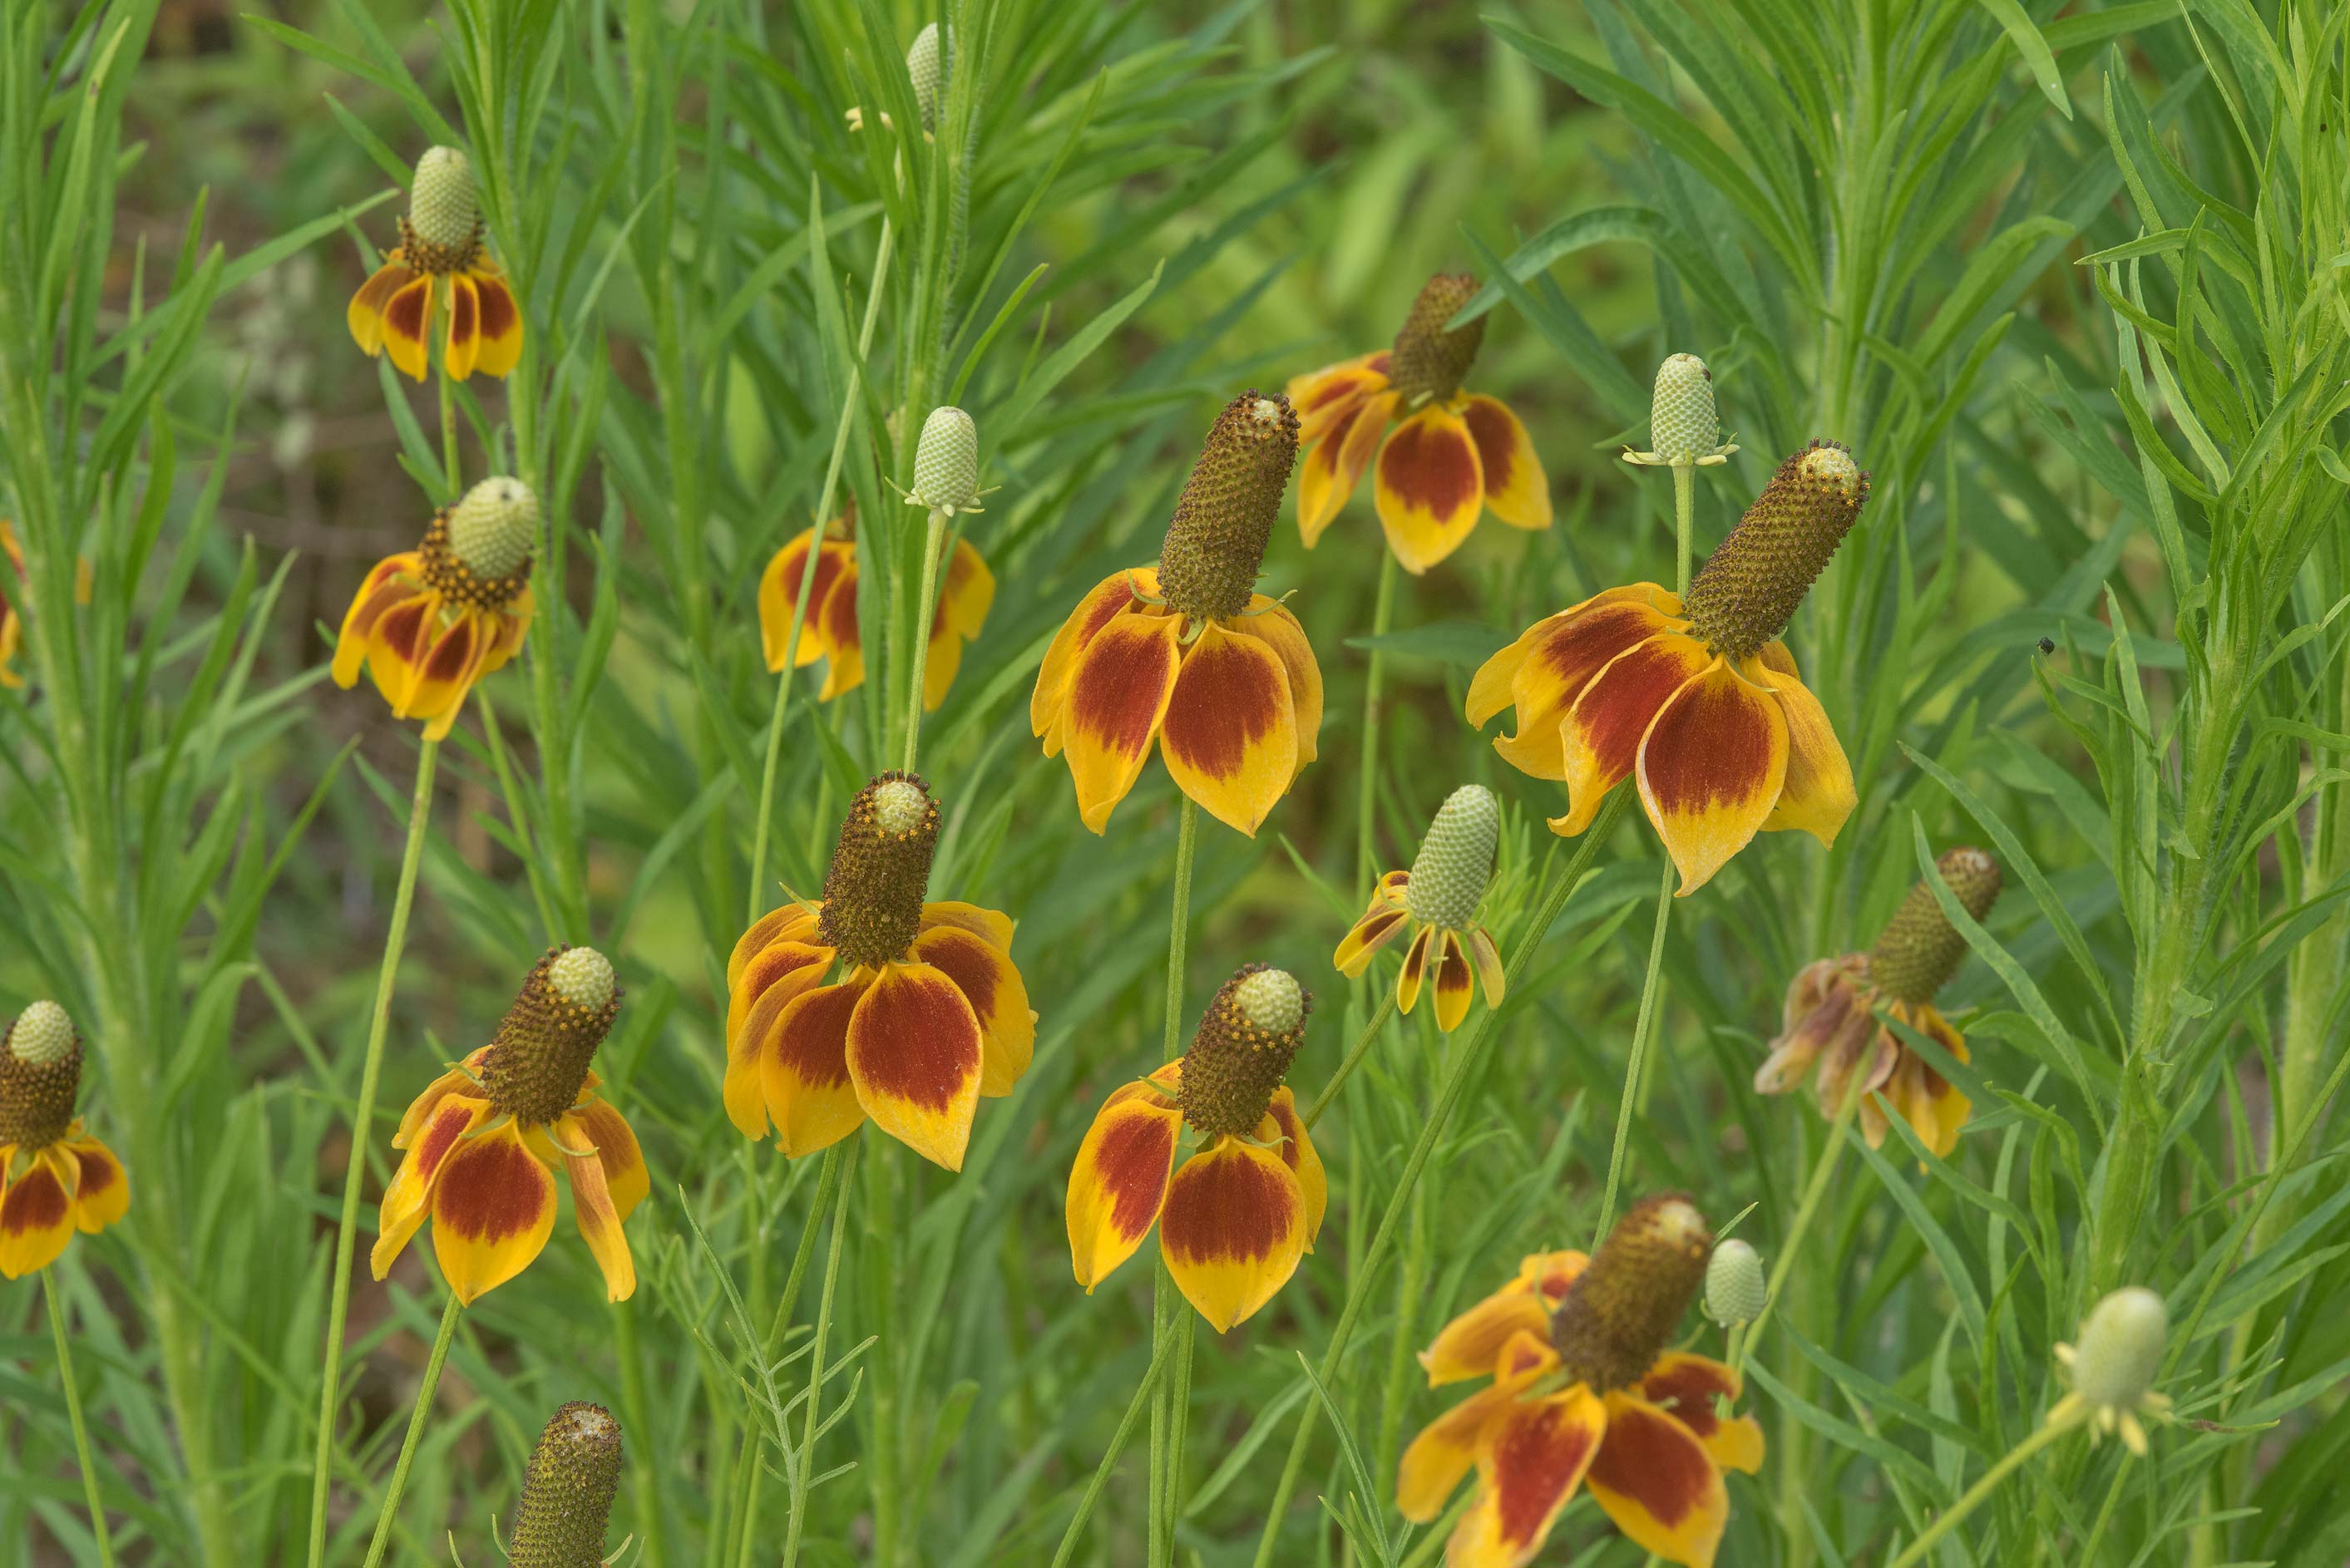 Mexican hat flowers (Ratibida columnifera) near a...State Historic Site. Washington, Texas